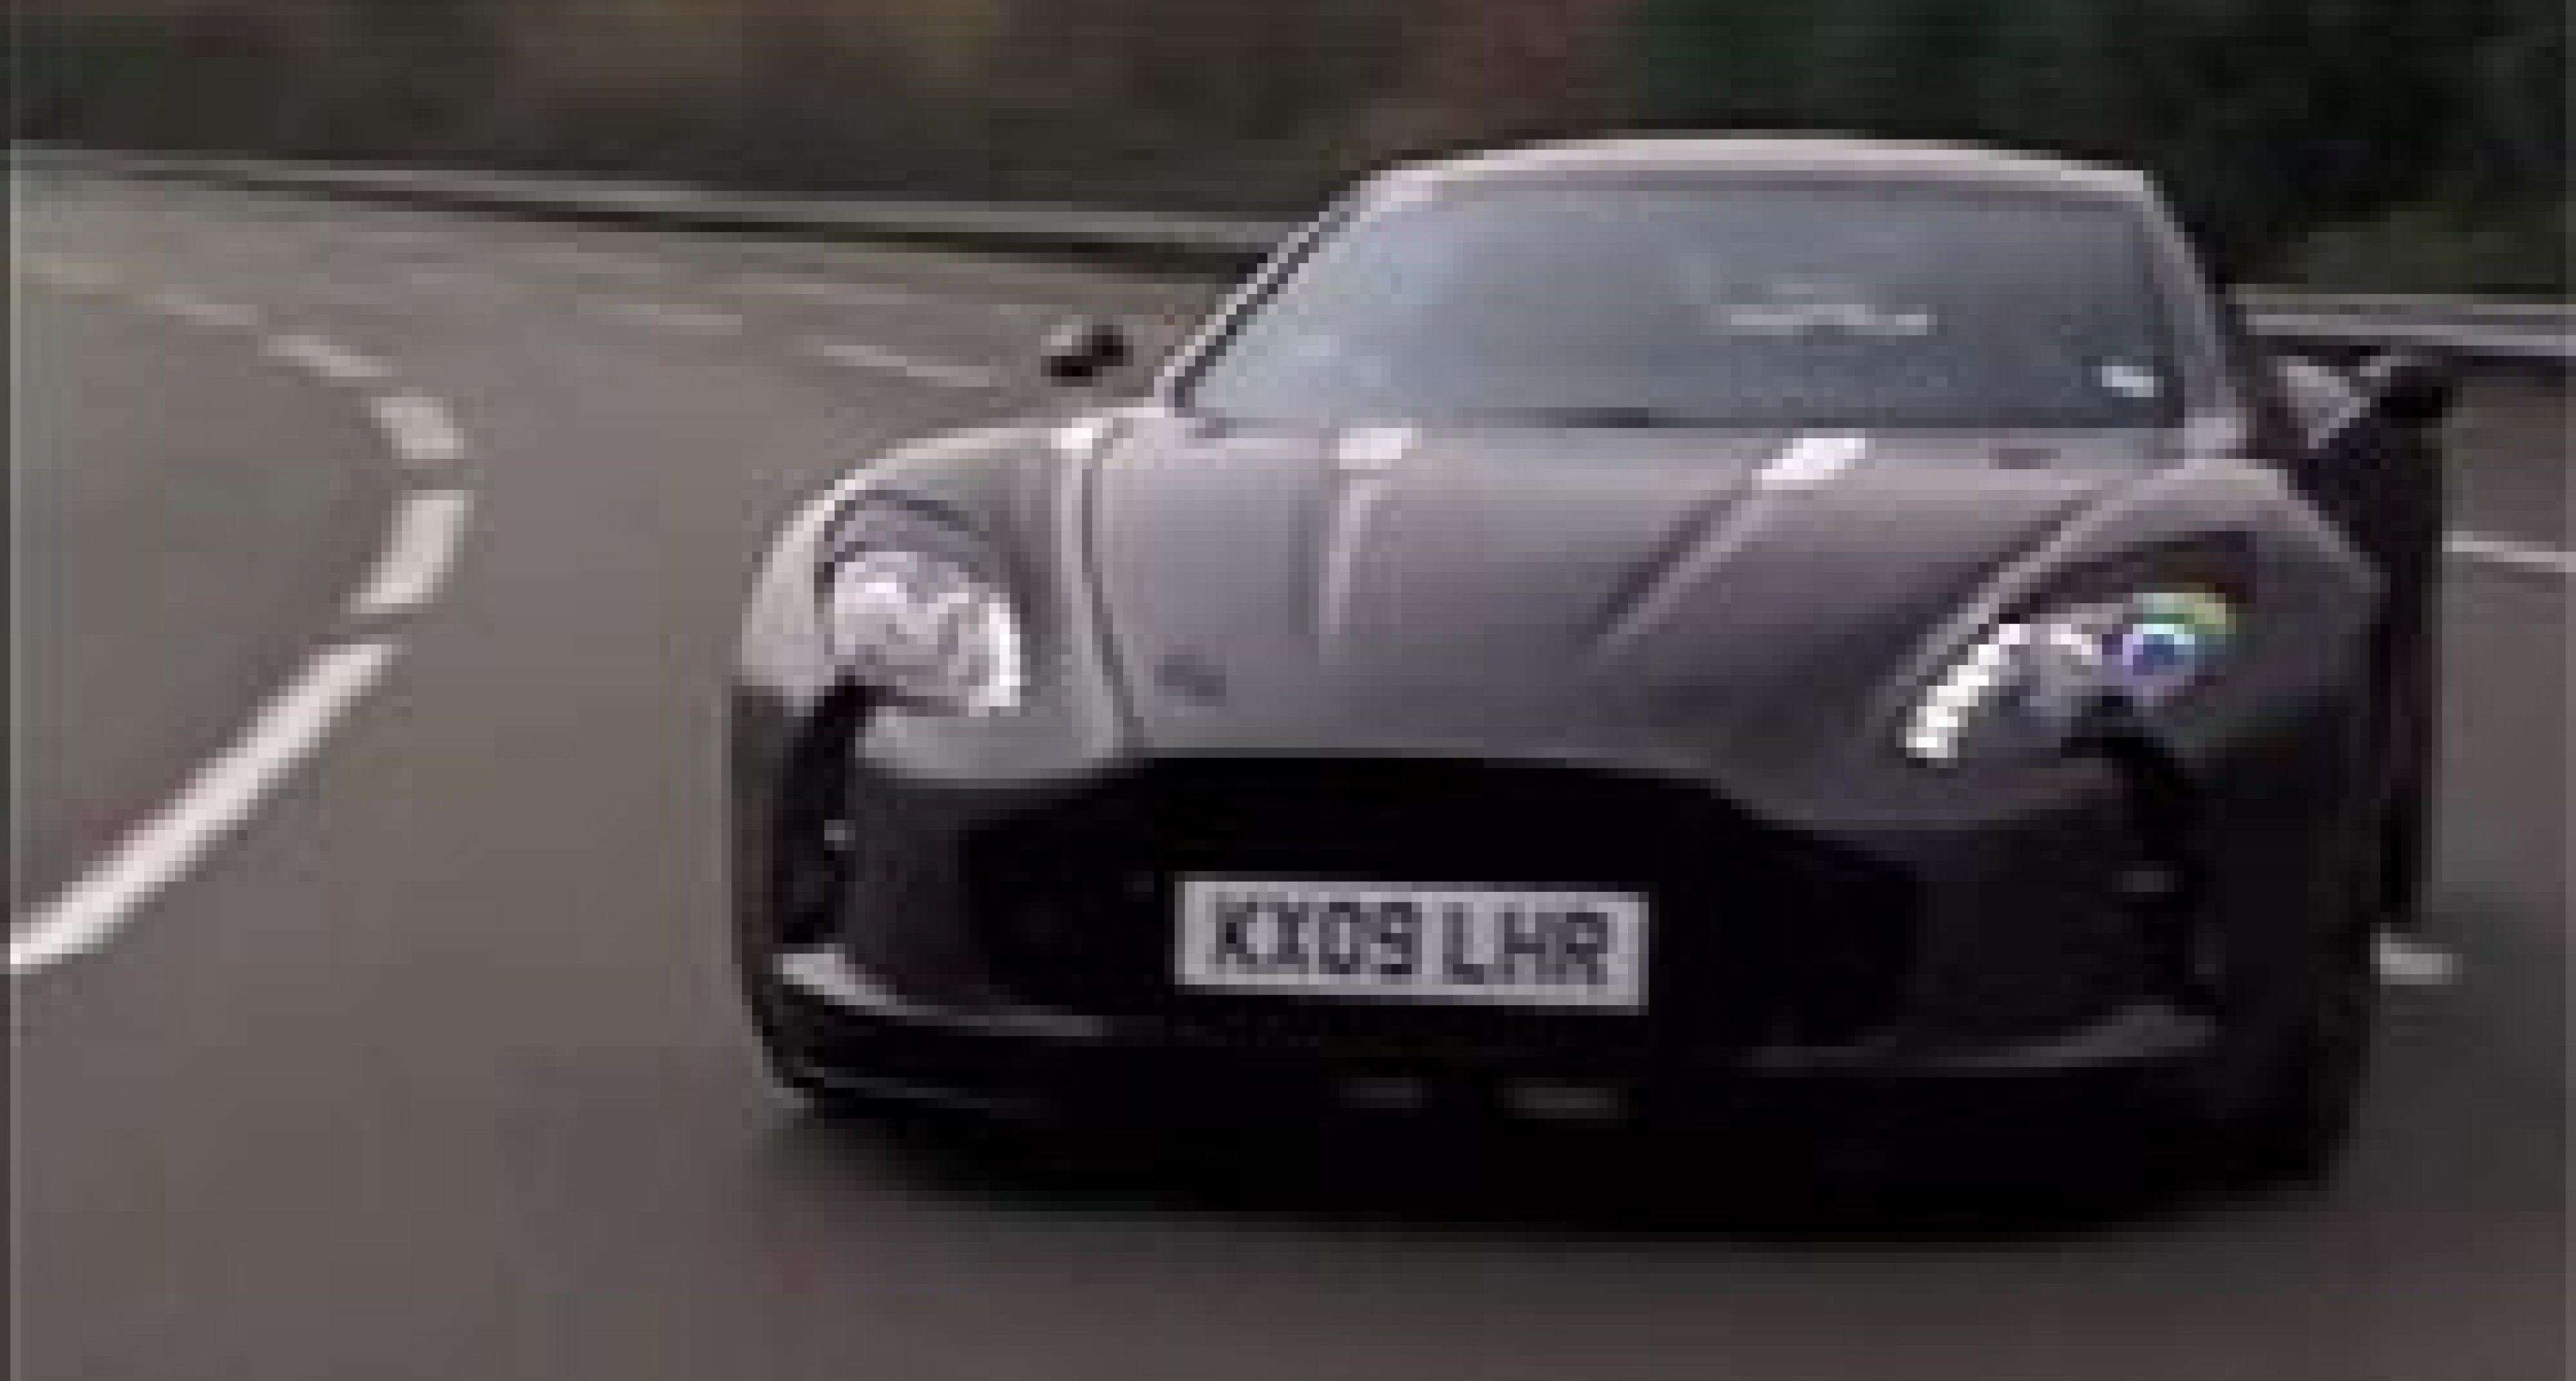 Aston Martin One-77 – Video Released